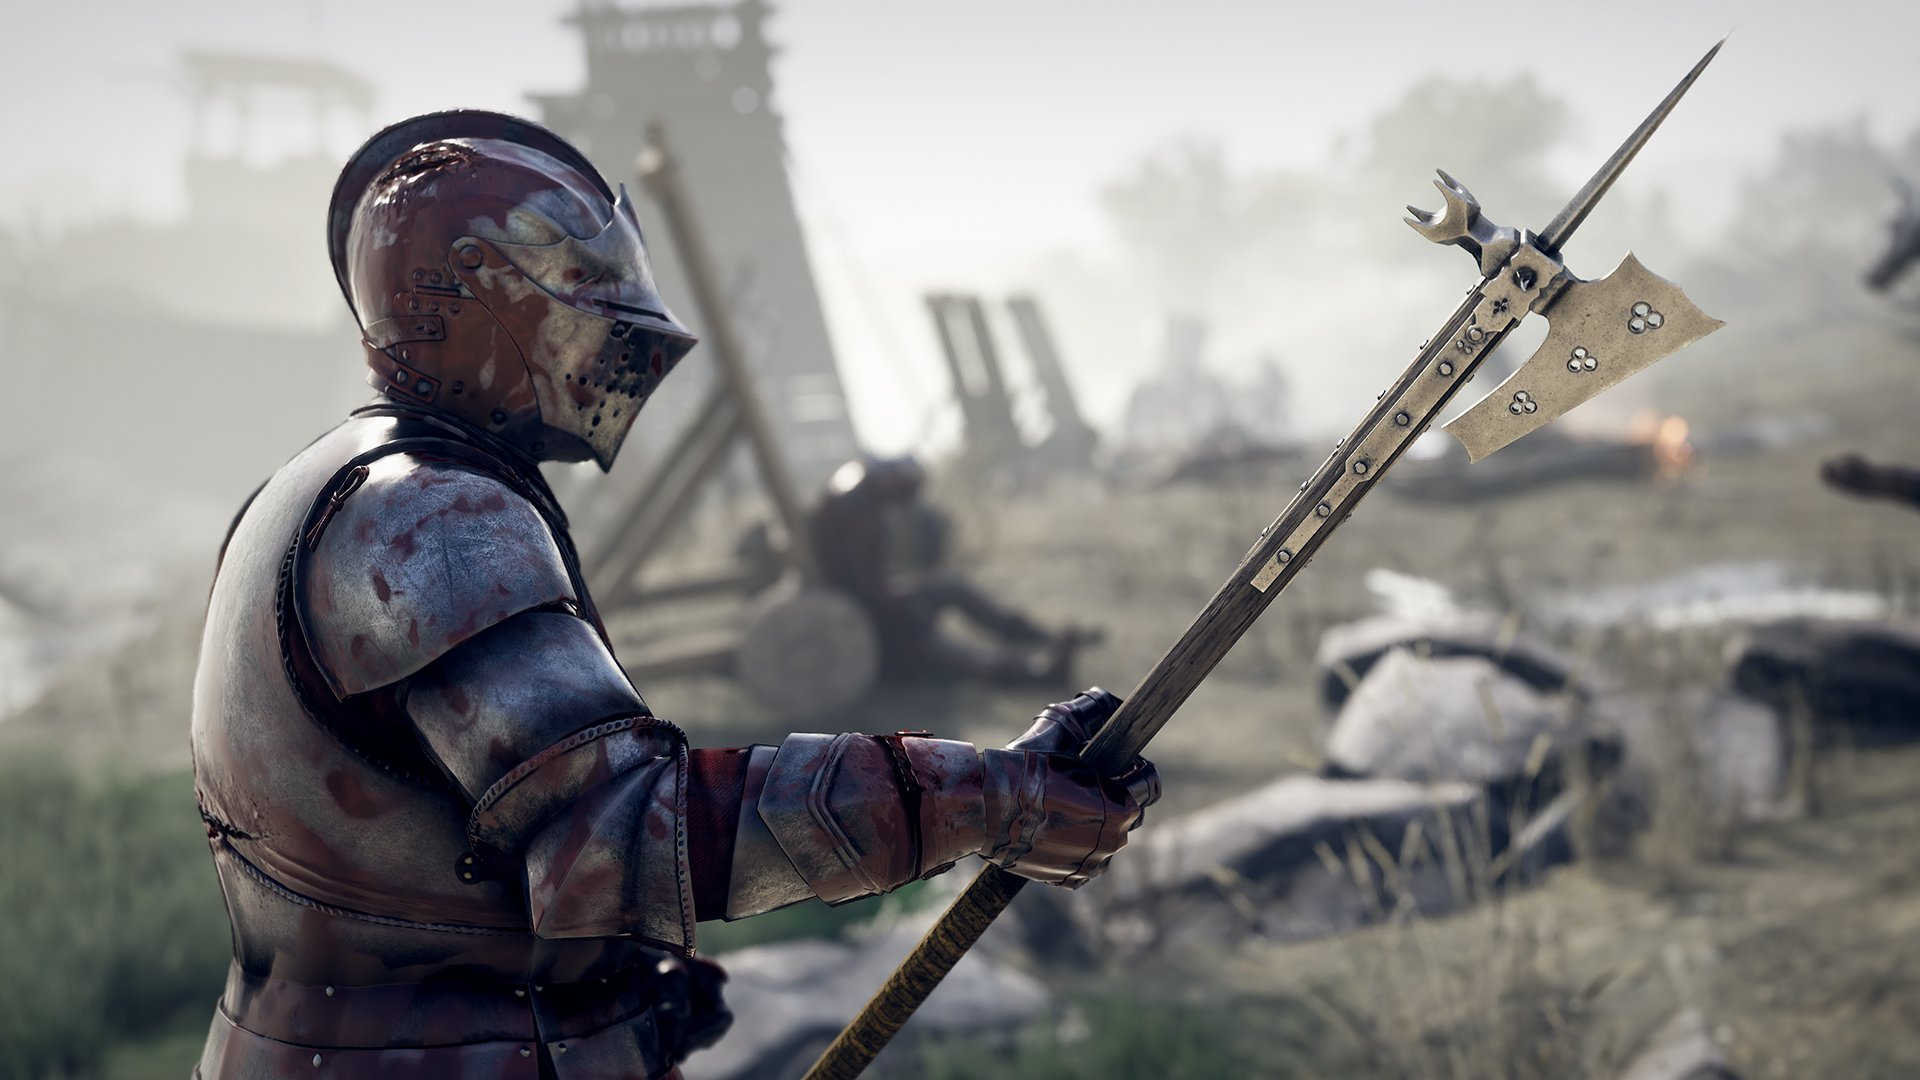 The best weapons in Mordhau are ones that deal high amounts of damage, are fast, and offer ample range. The weapons you use will vary depending on your scenario and opponent, and you have the ability to hold multiple weapons at once and switch between them in Mordhau.